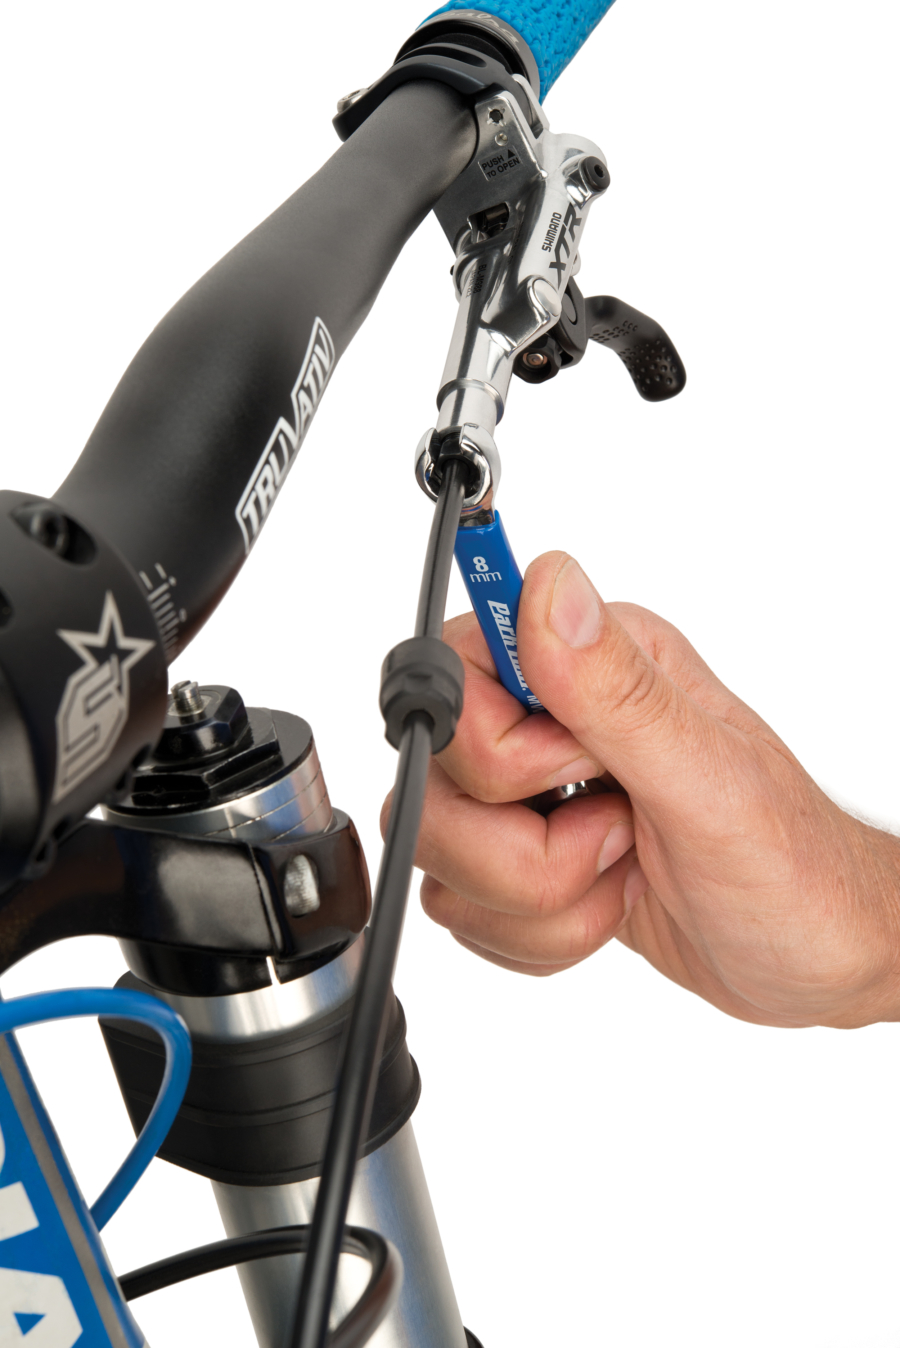 The Park Tool MWF-1 Metric Flare Wrench loosening Shimano® compression fitting at the lever, enlarged